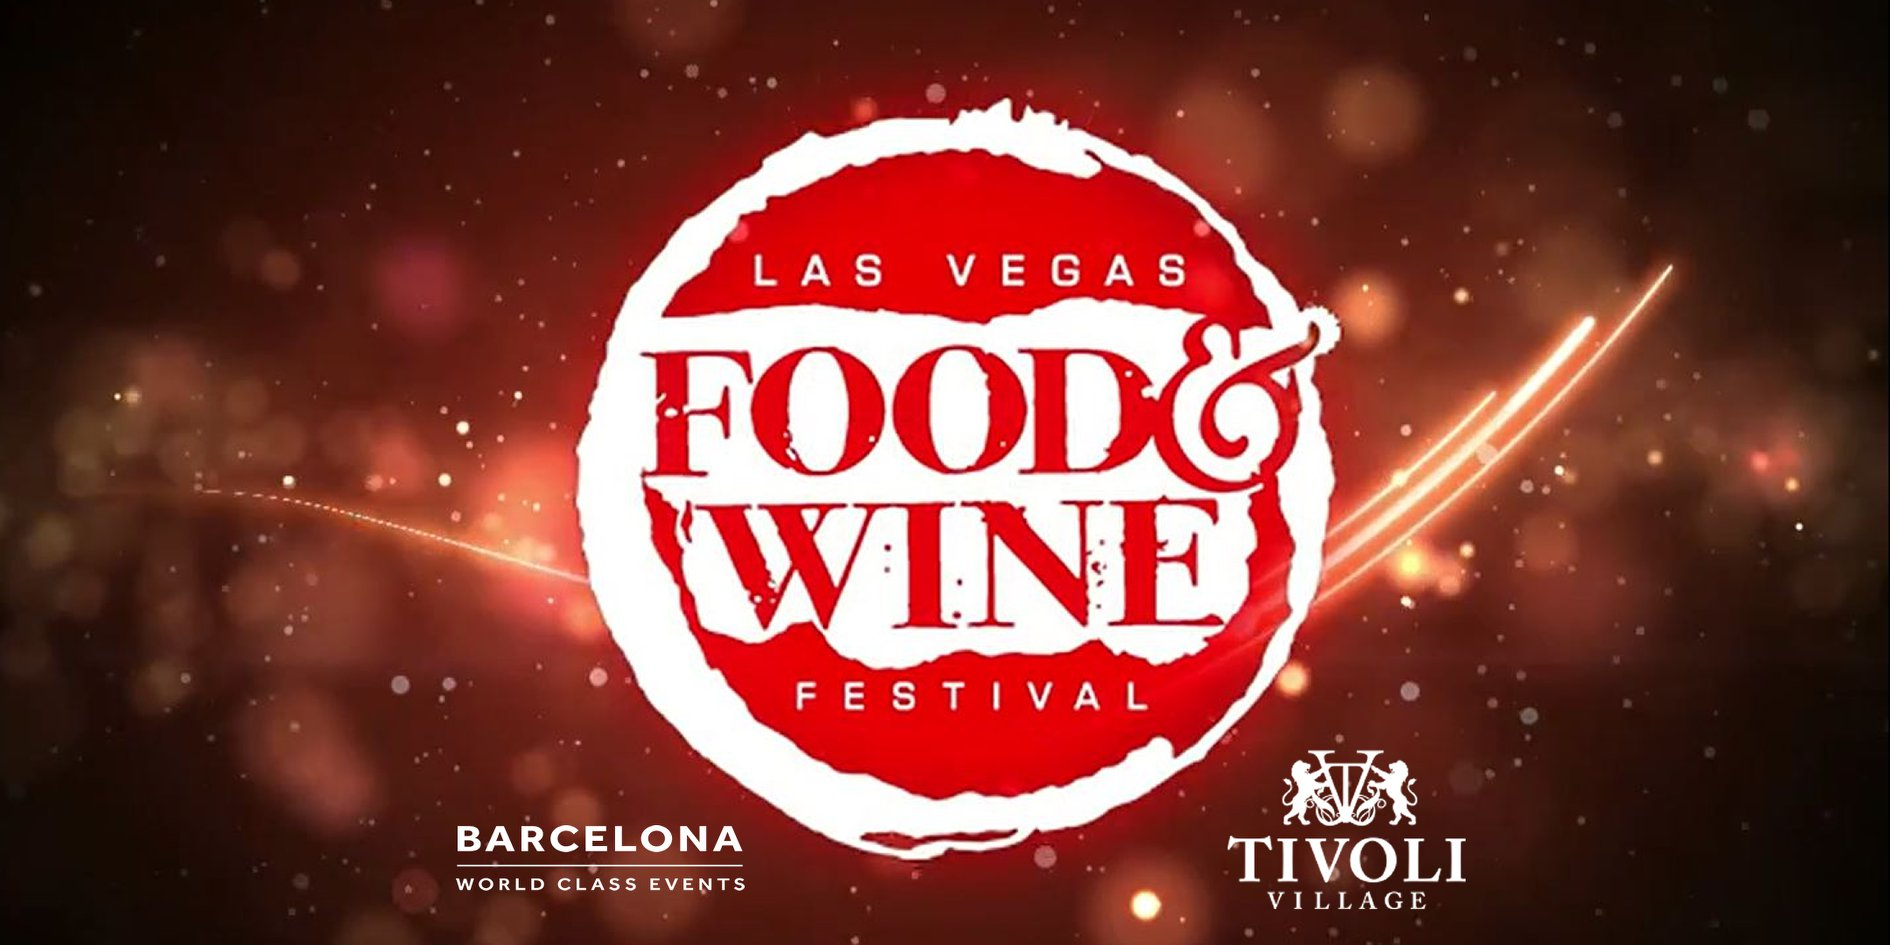 Brio Tivoli Village Happy Hour Menu Las Vegas Food Wine Festival To Feature The World S Best Chefs